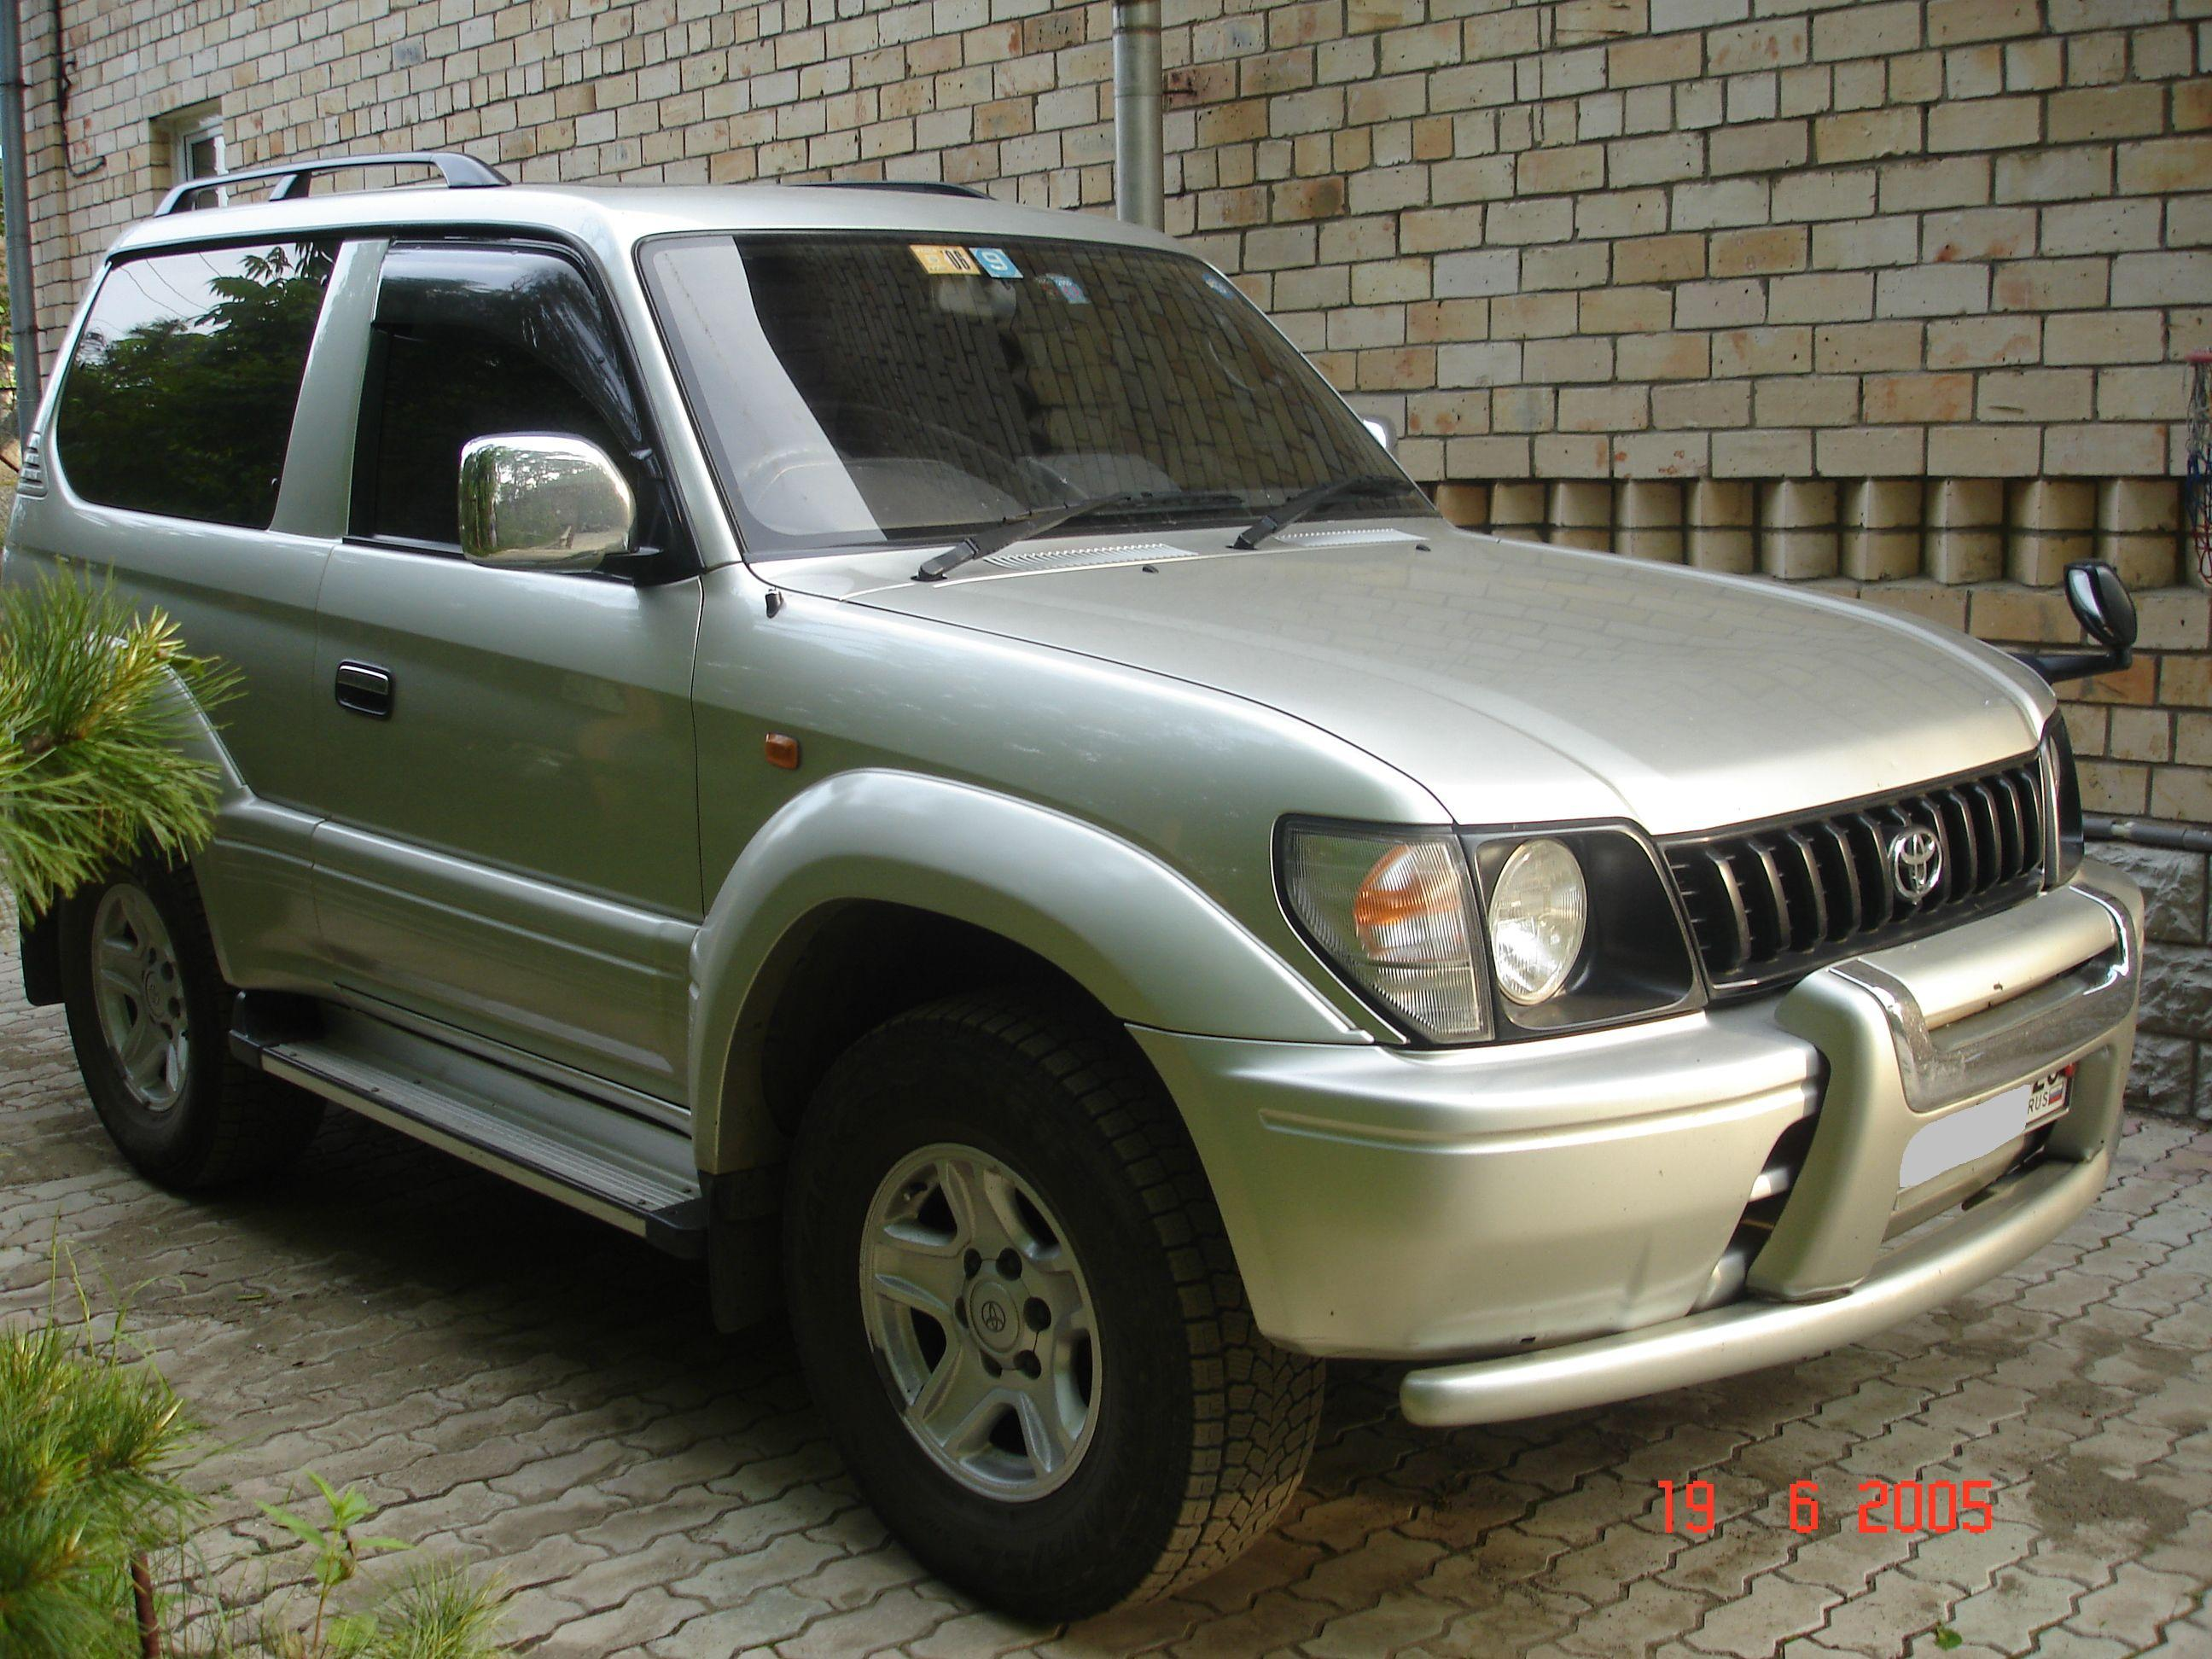 Used TOYOTA LAND CRUISER PRADO 1998 for sale | Stock ...